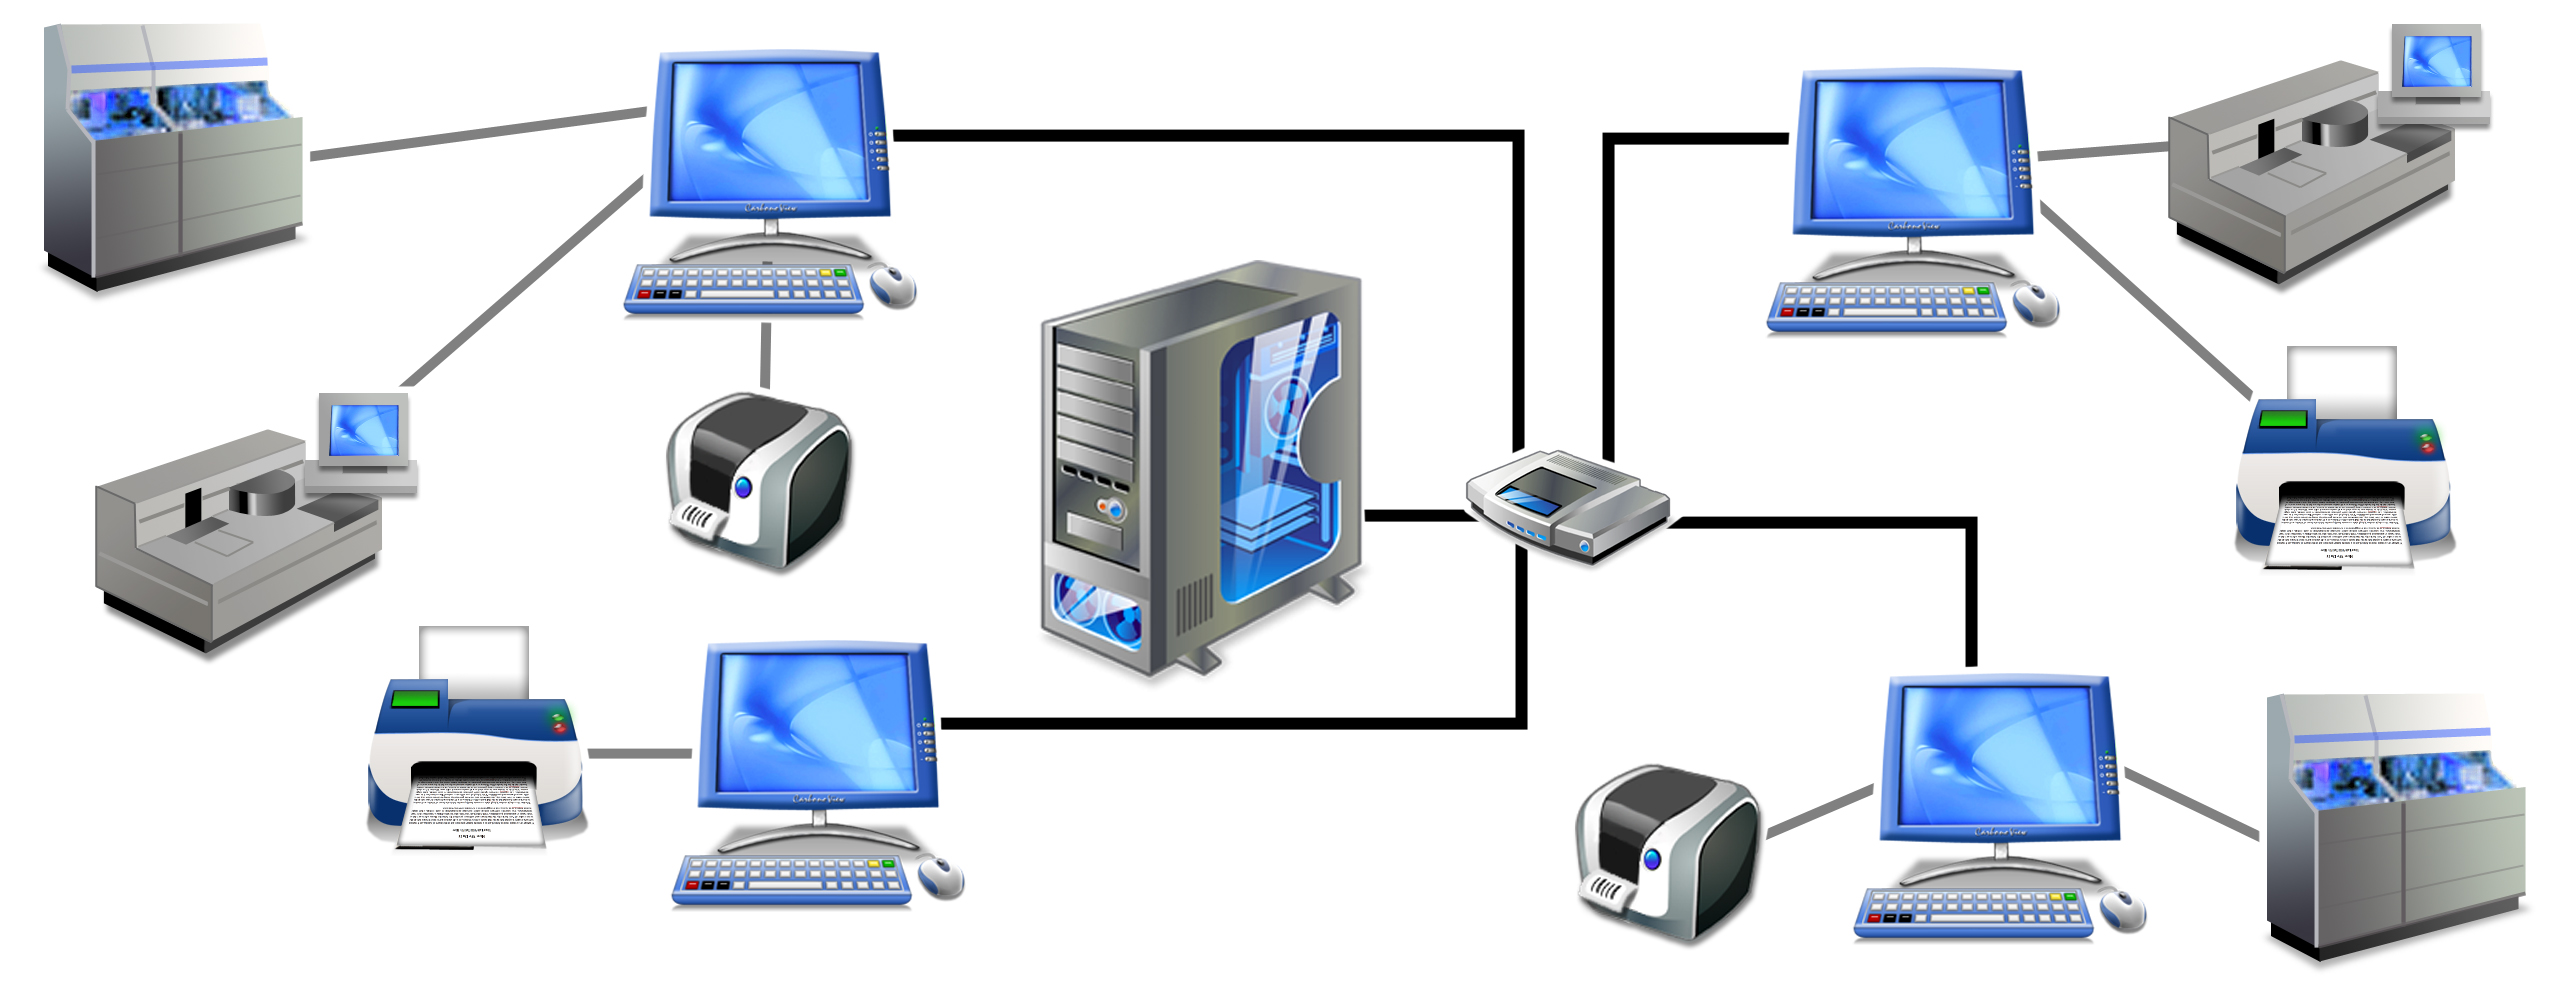 networking solutions vision data techs local area network lan